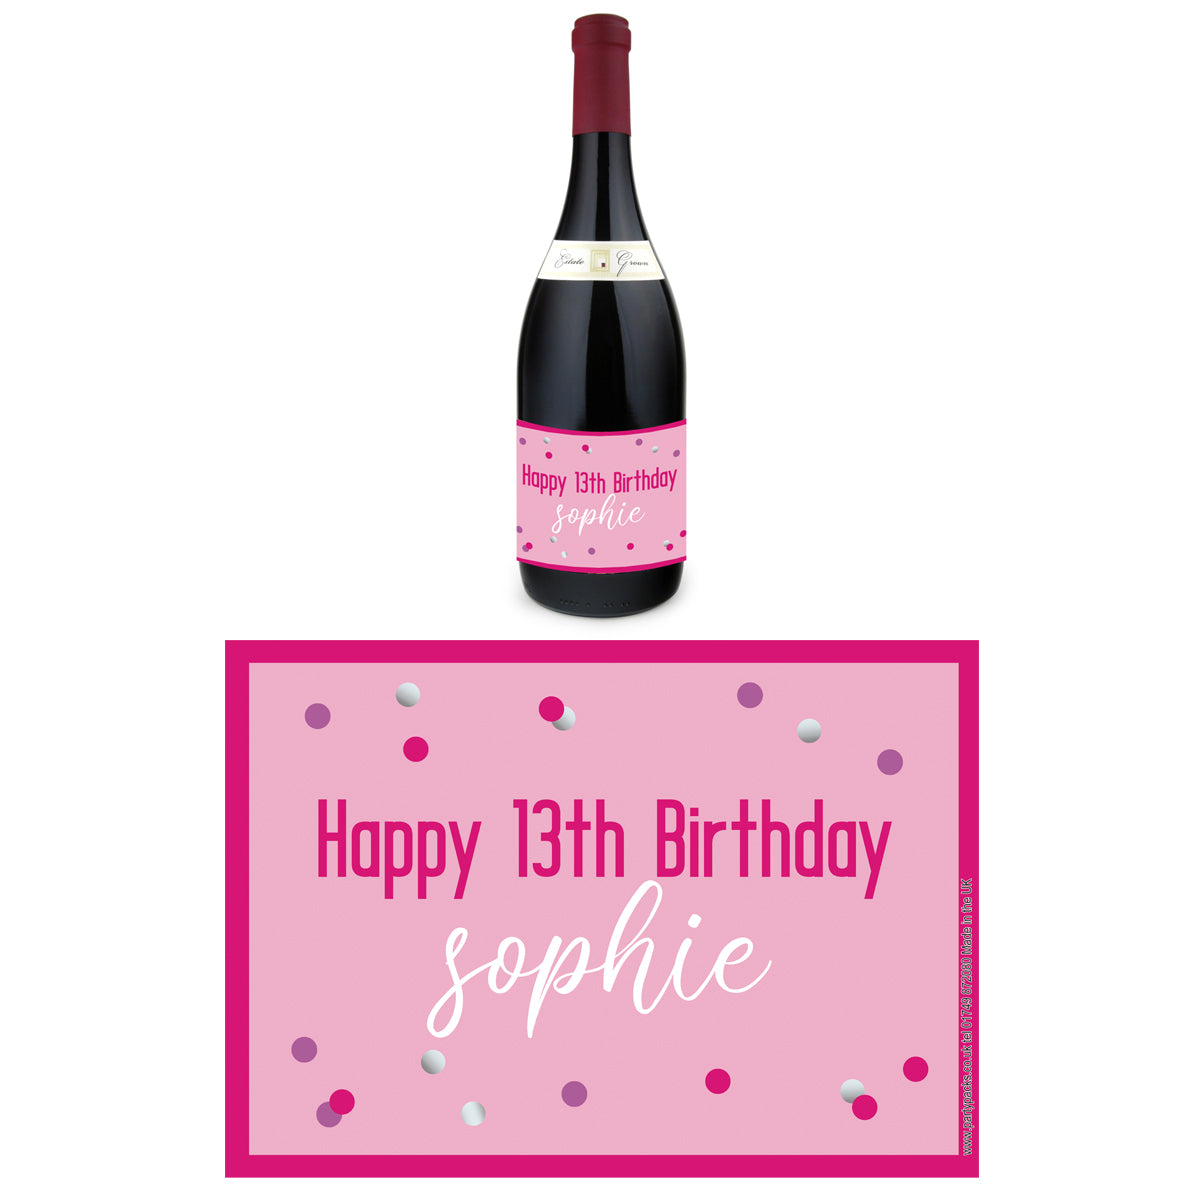 Personalised Wine Bottle Labels - Glitz Pink - Pack of 4